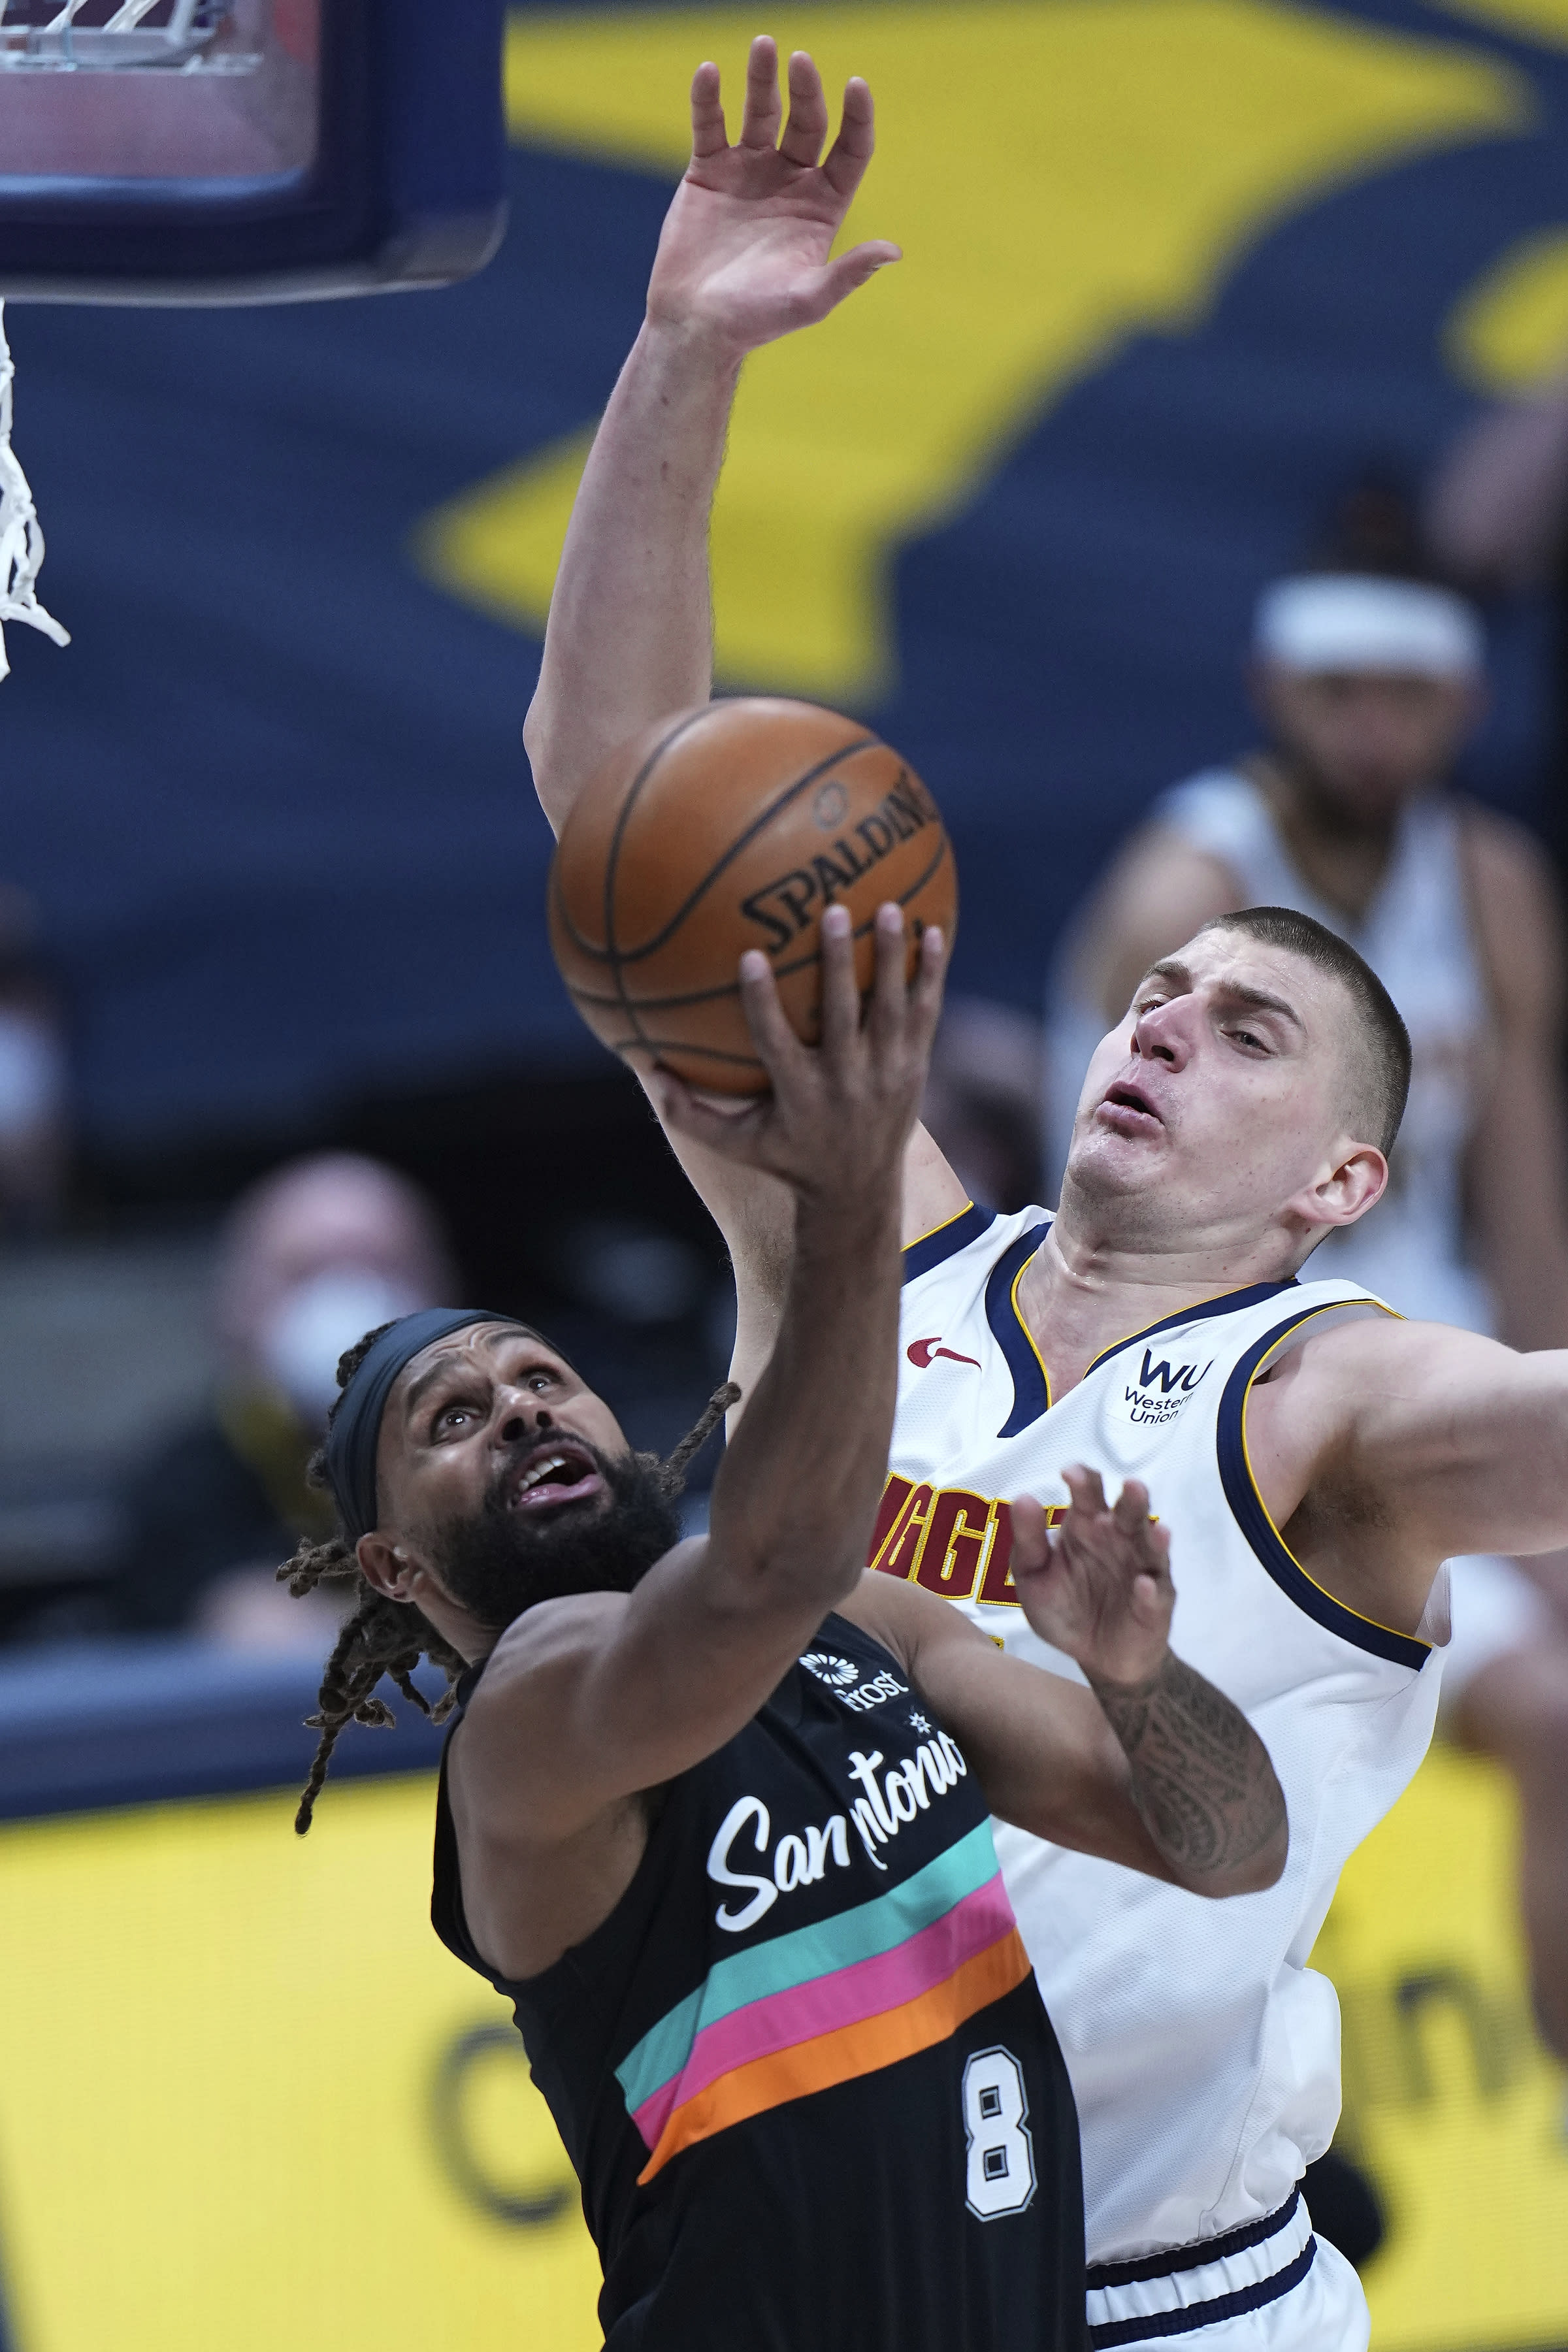 San Antonio Spurs guard Patty Mills (8) shoots against Denver Nuggets center Nikola Jokic during the first quarter of an NBA basketball game Wednesday, April 7, 2021, in Denver. (AP Photo/Jack Dempsey)